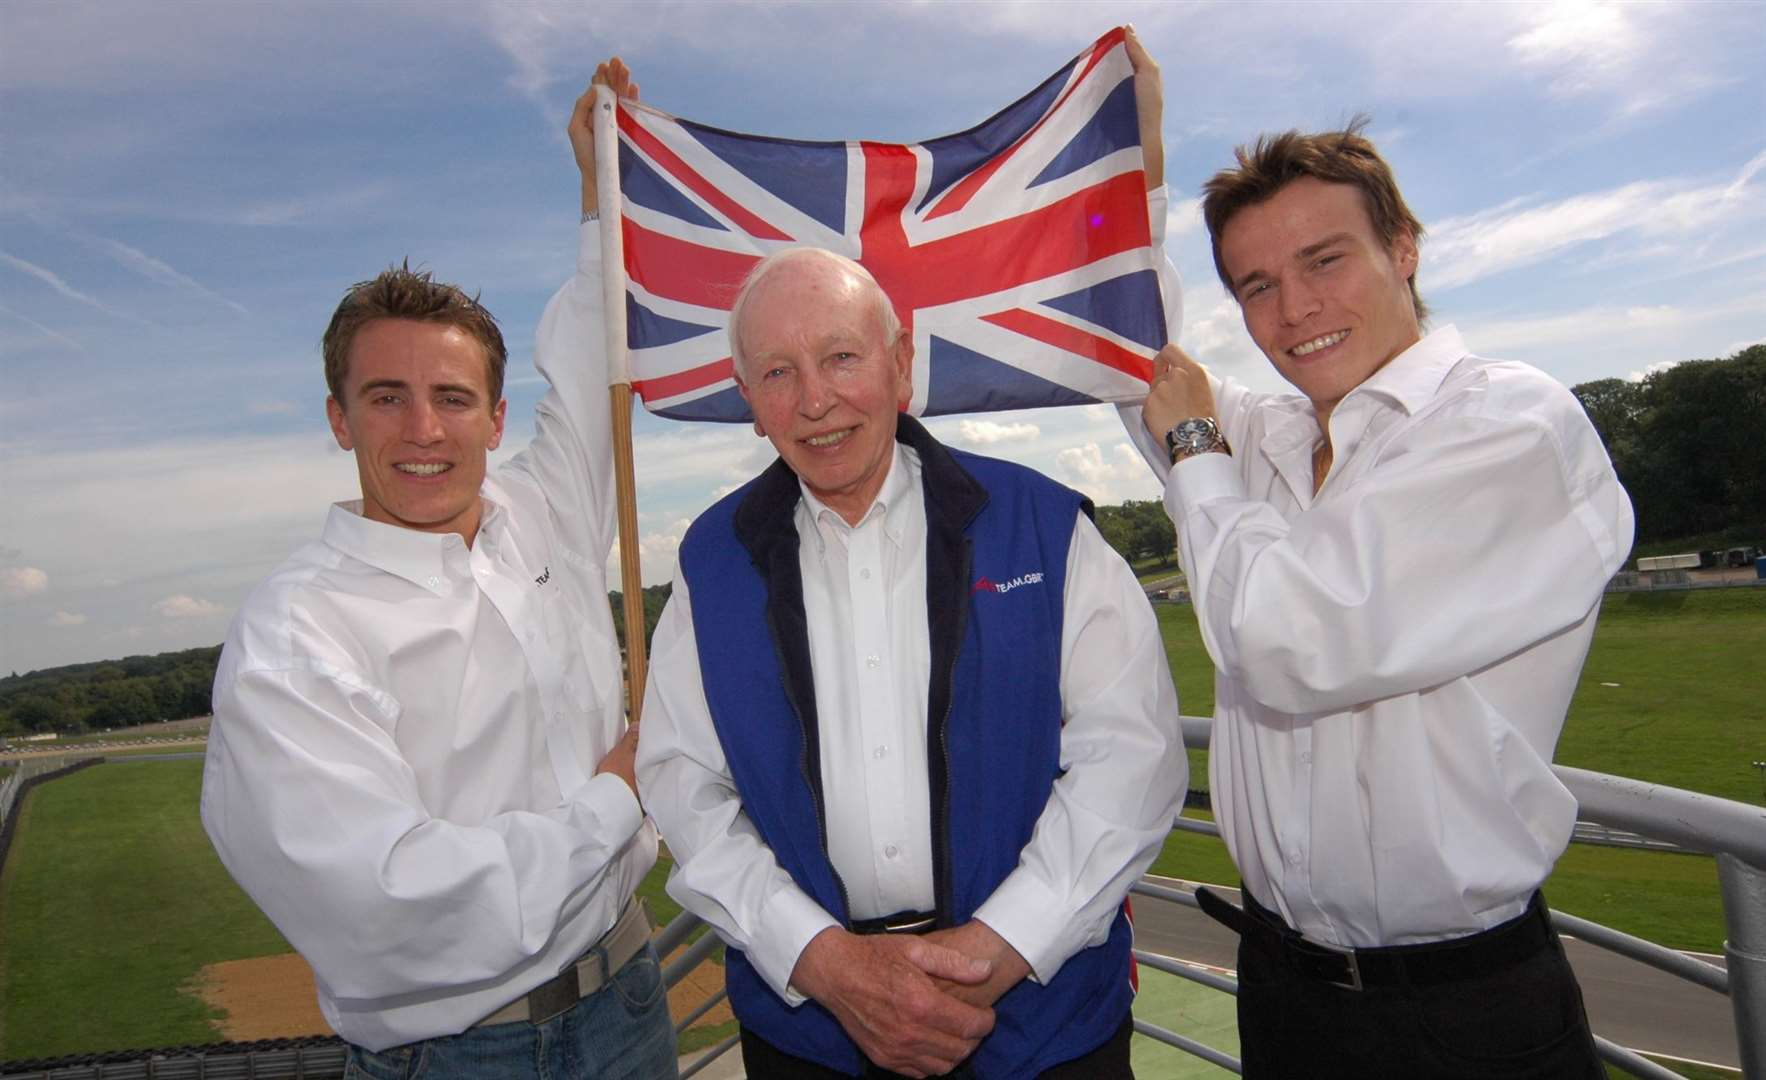 A1 Team GBR boss John Surtees with drivers Robbie Kerr and Alex Lloyd at Brands Hatch in 2005